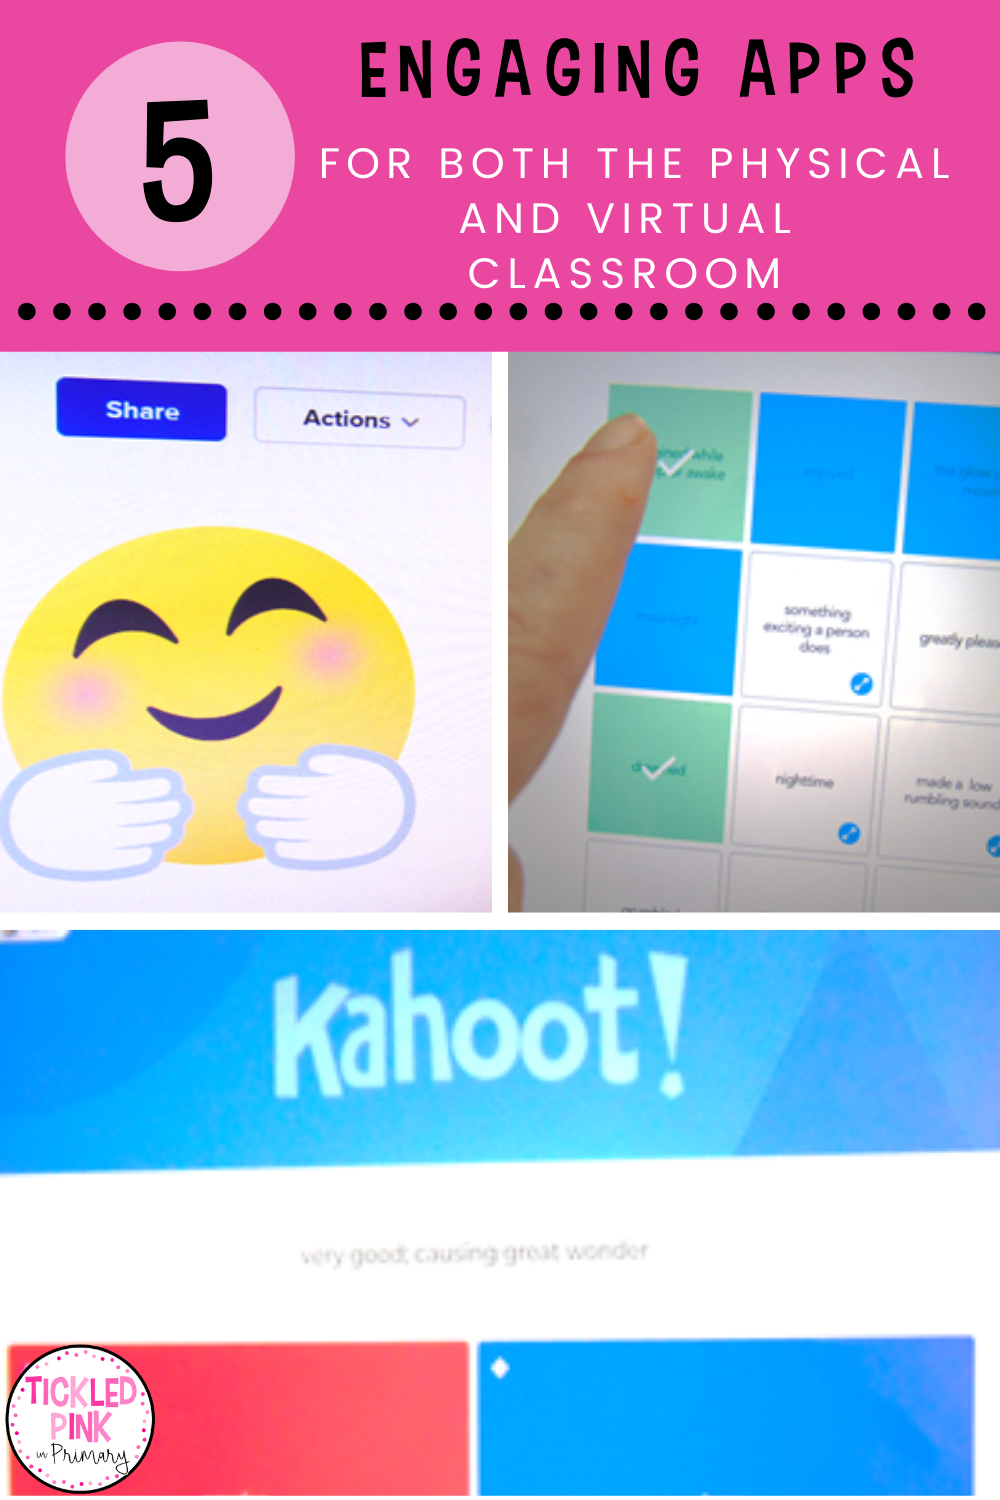 5 Apps and Games for both the Physical and Virtual Classroom